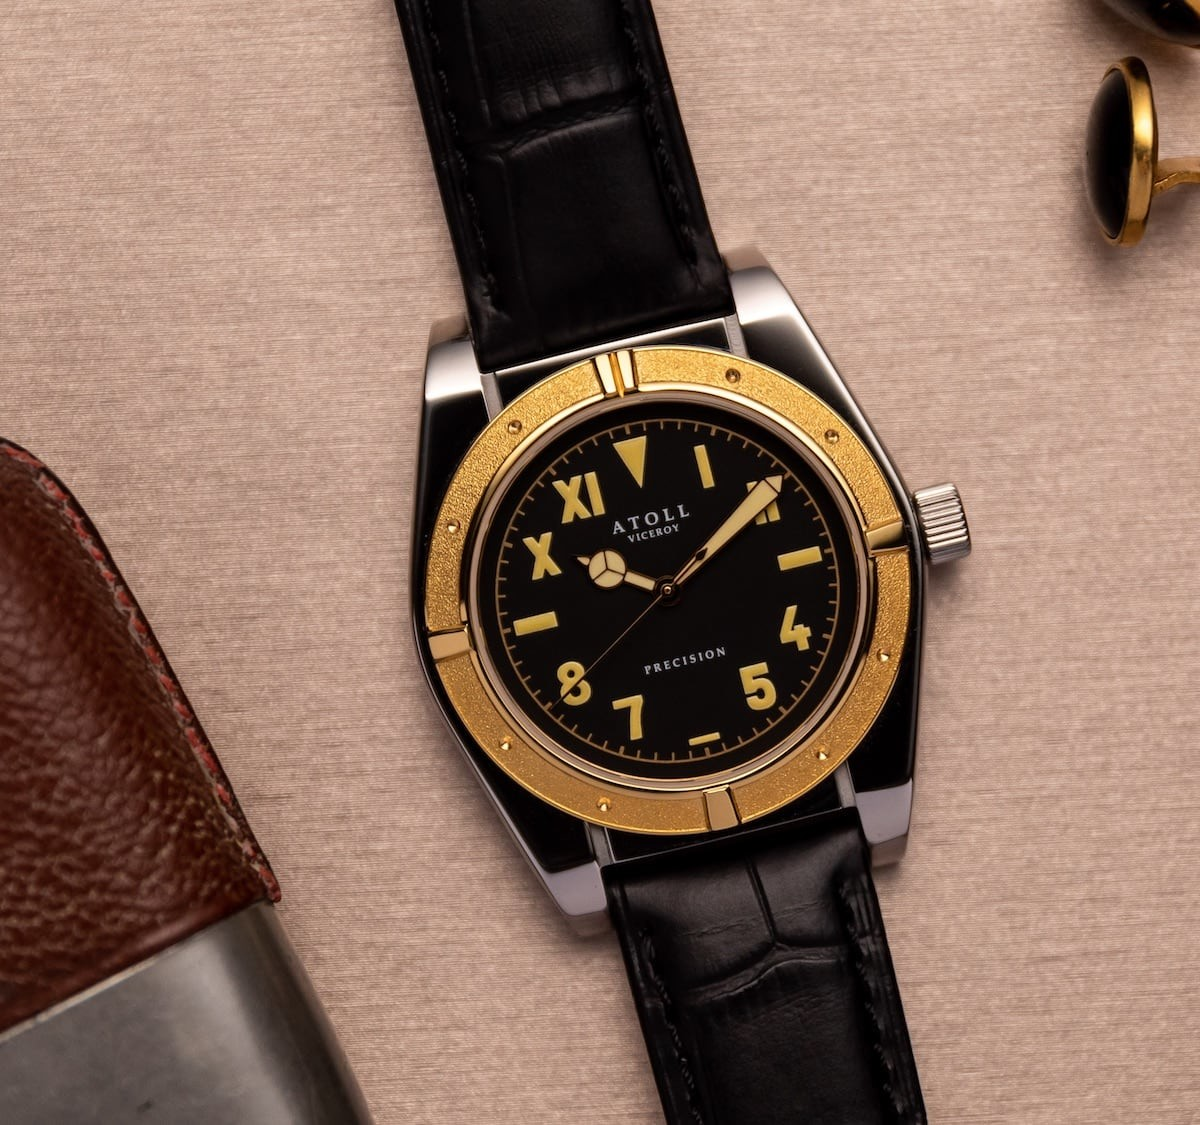 Atoll VICEROY Iconic Dress Watch is an homage to the vintage Rolex Bubbleback